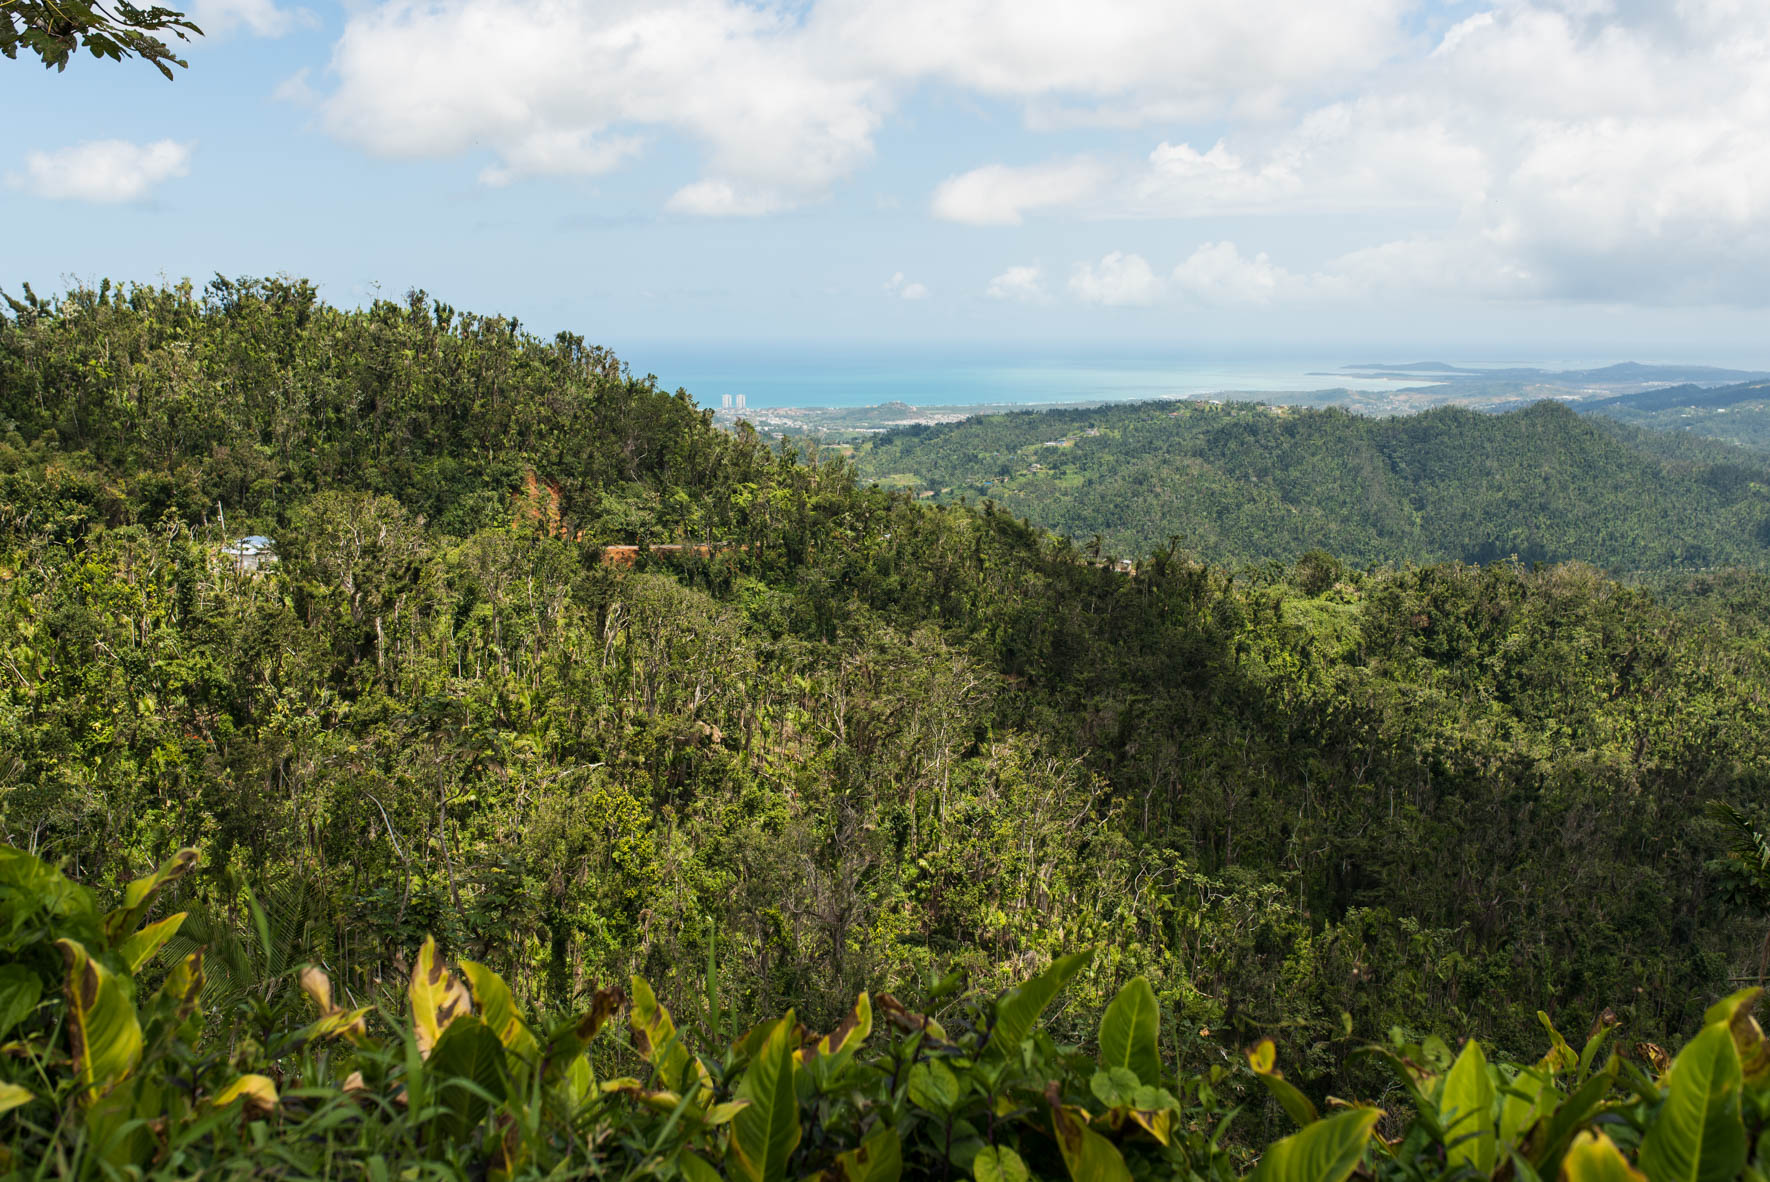 Looking at the beautiful blue oceans from the slopes of El Yunque